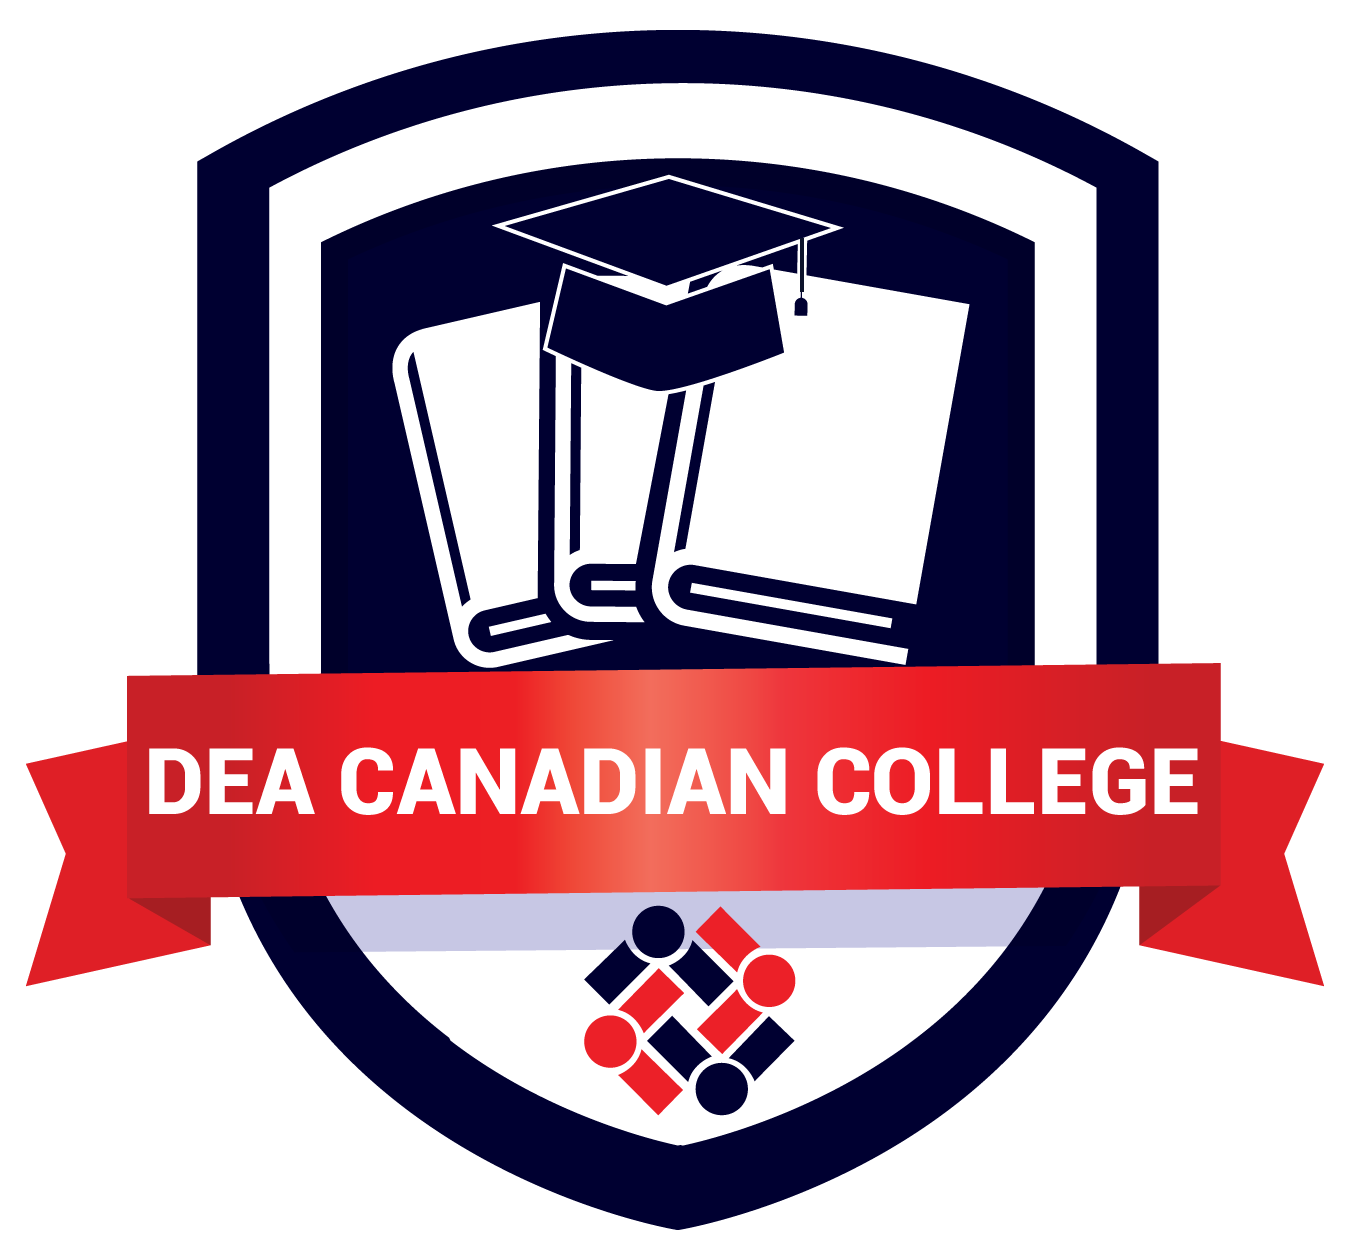 DEA Canadian College